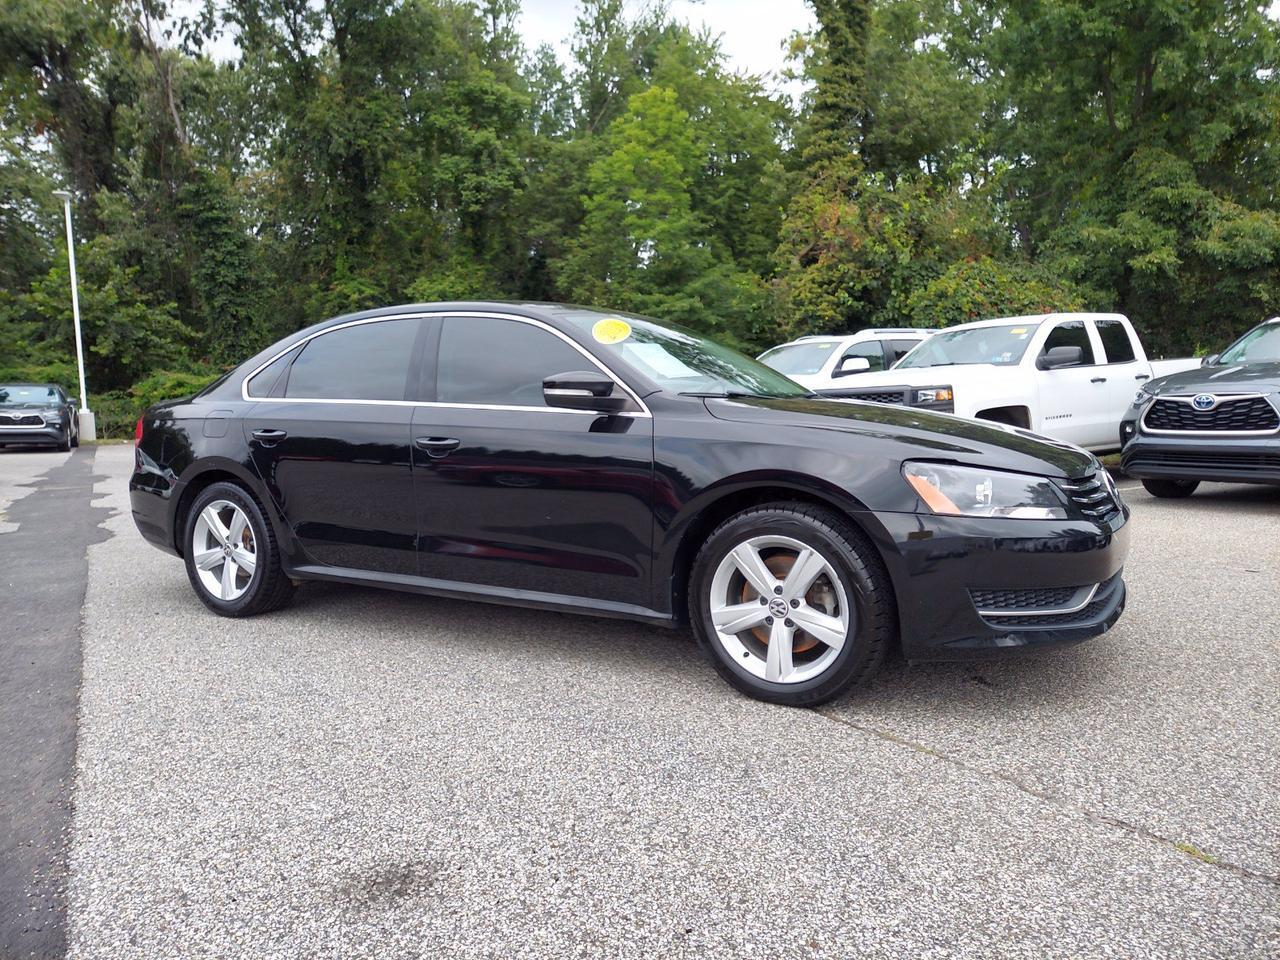 2013 Volkswagen Passat SE with Sunroof Conshohocken PA